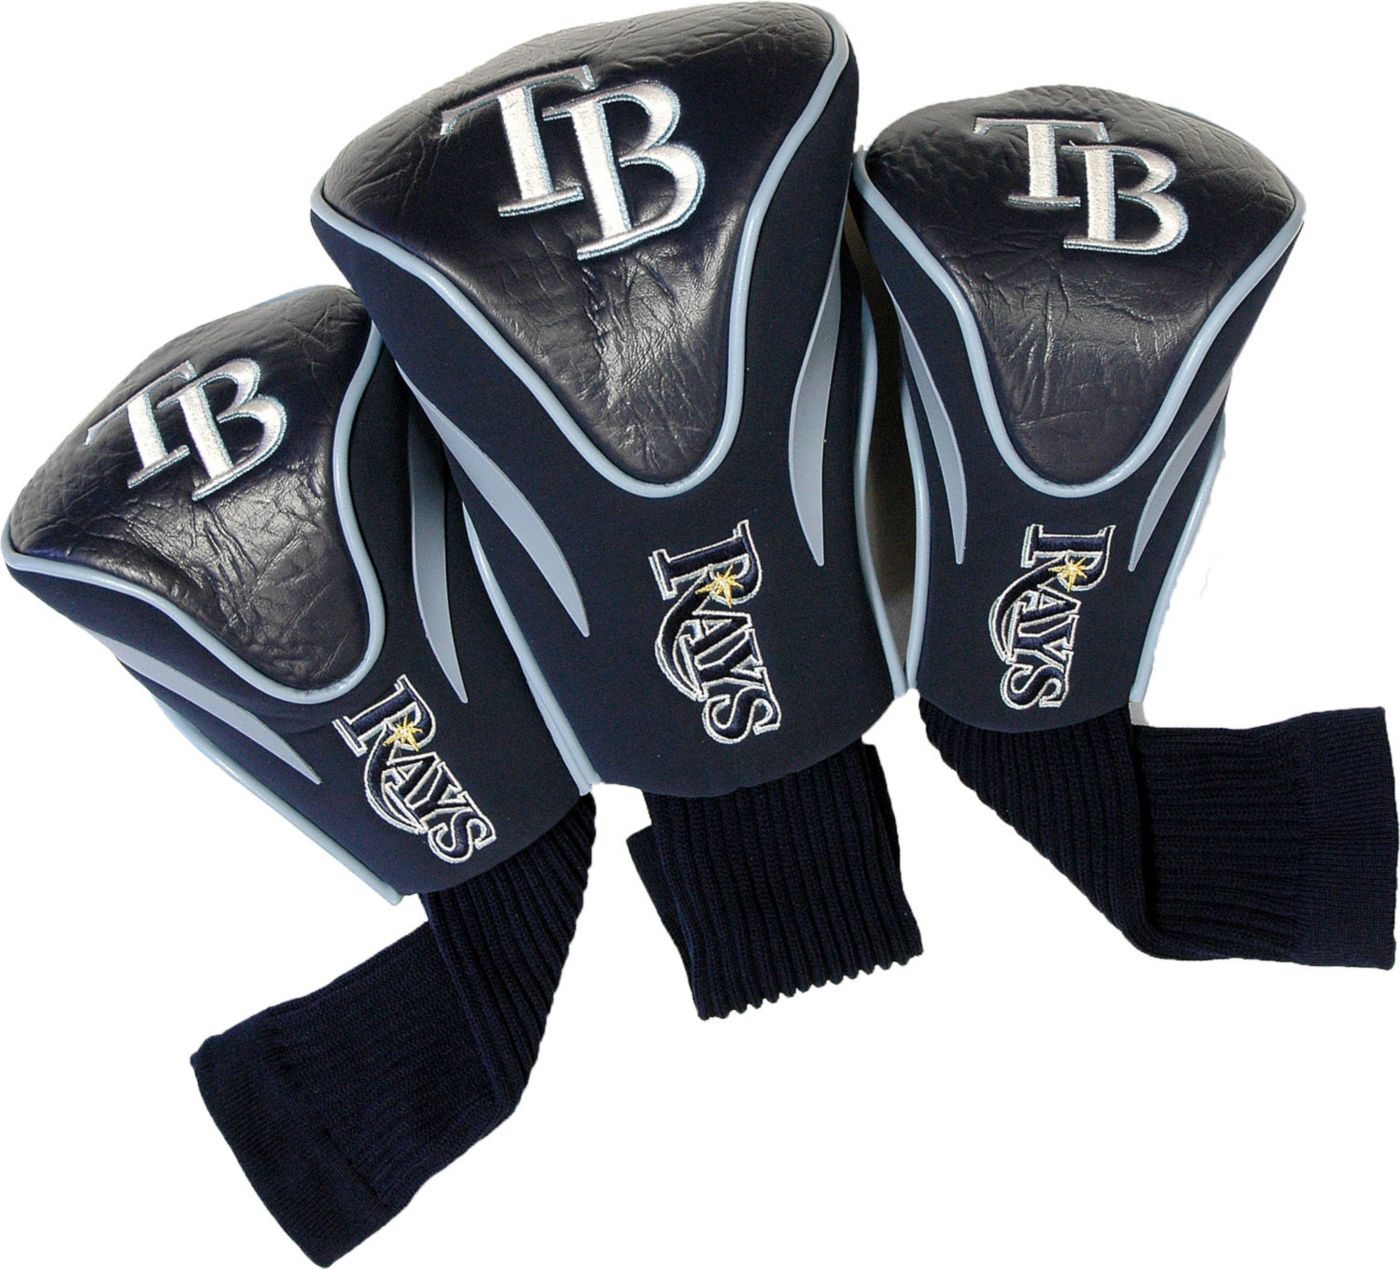 Team Golf Tampa Bay Rays Contour Sock Headcovers - 3 Pack